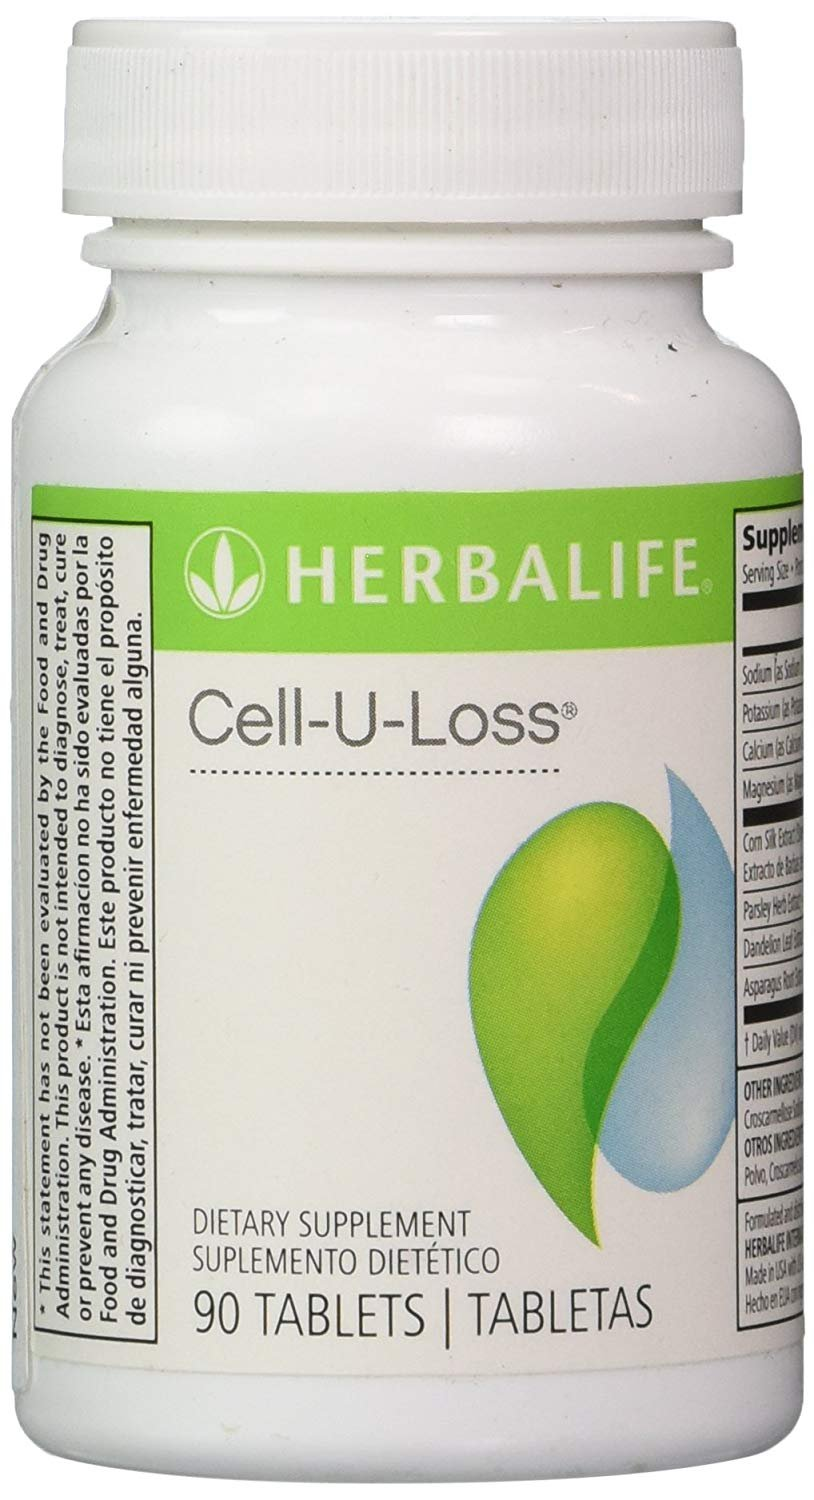 Herbalife Cell-U-Loss® Weight Loss Enhancer Natural Detoxification and Healthy Elimination of